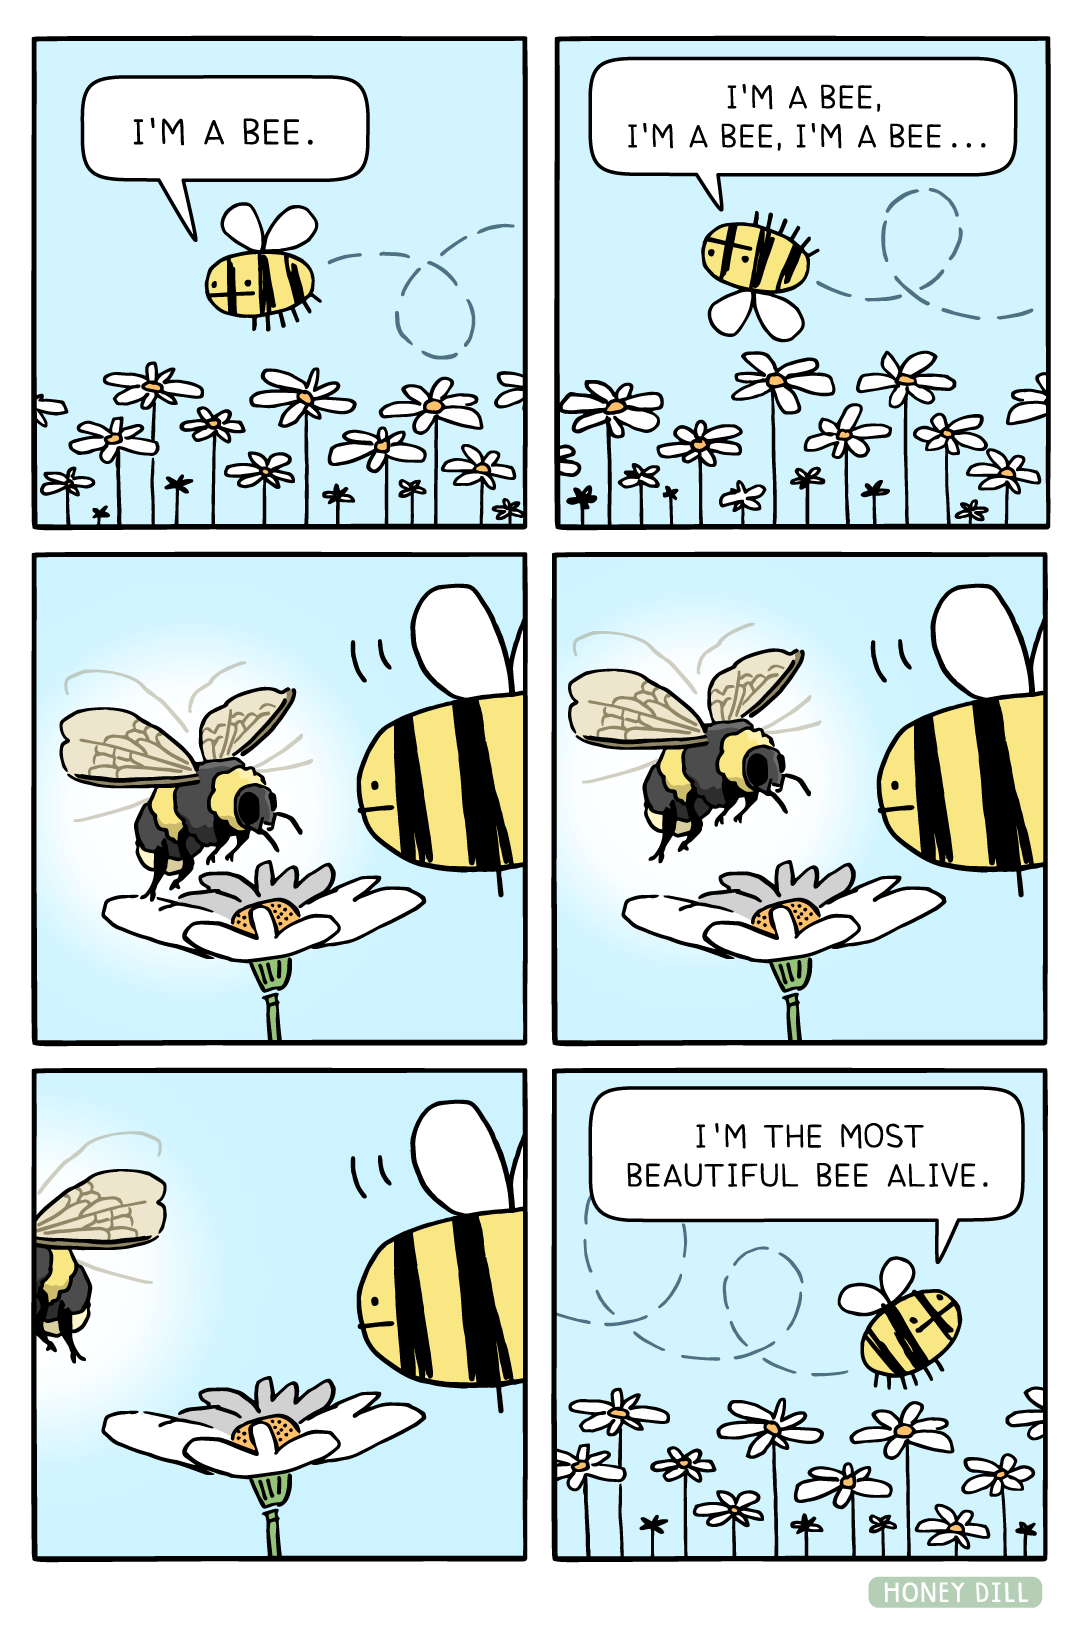 imabee-1080v2.png